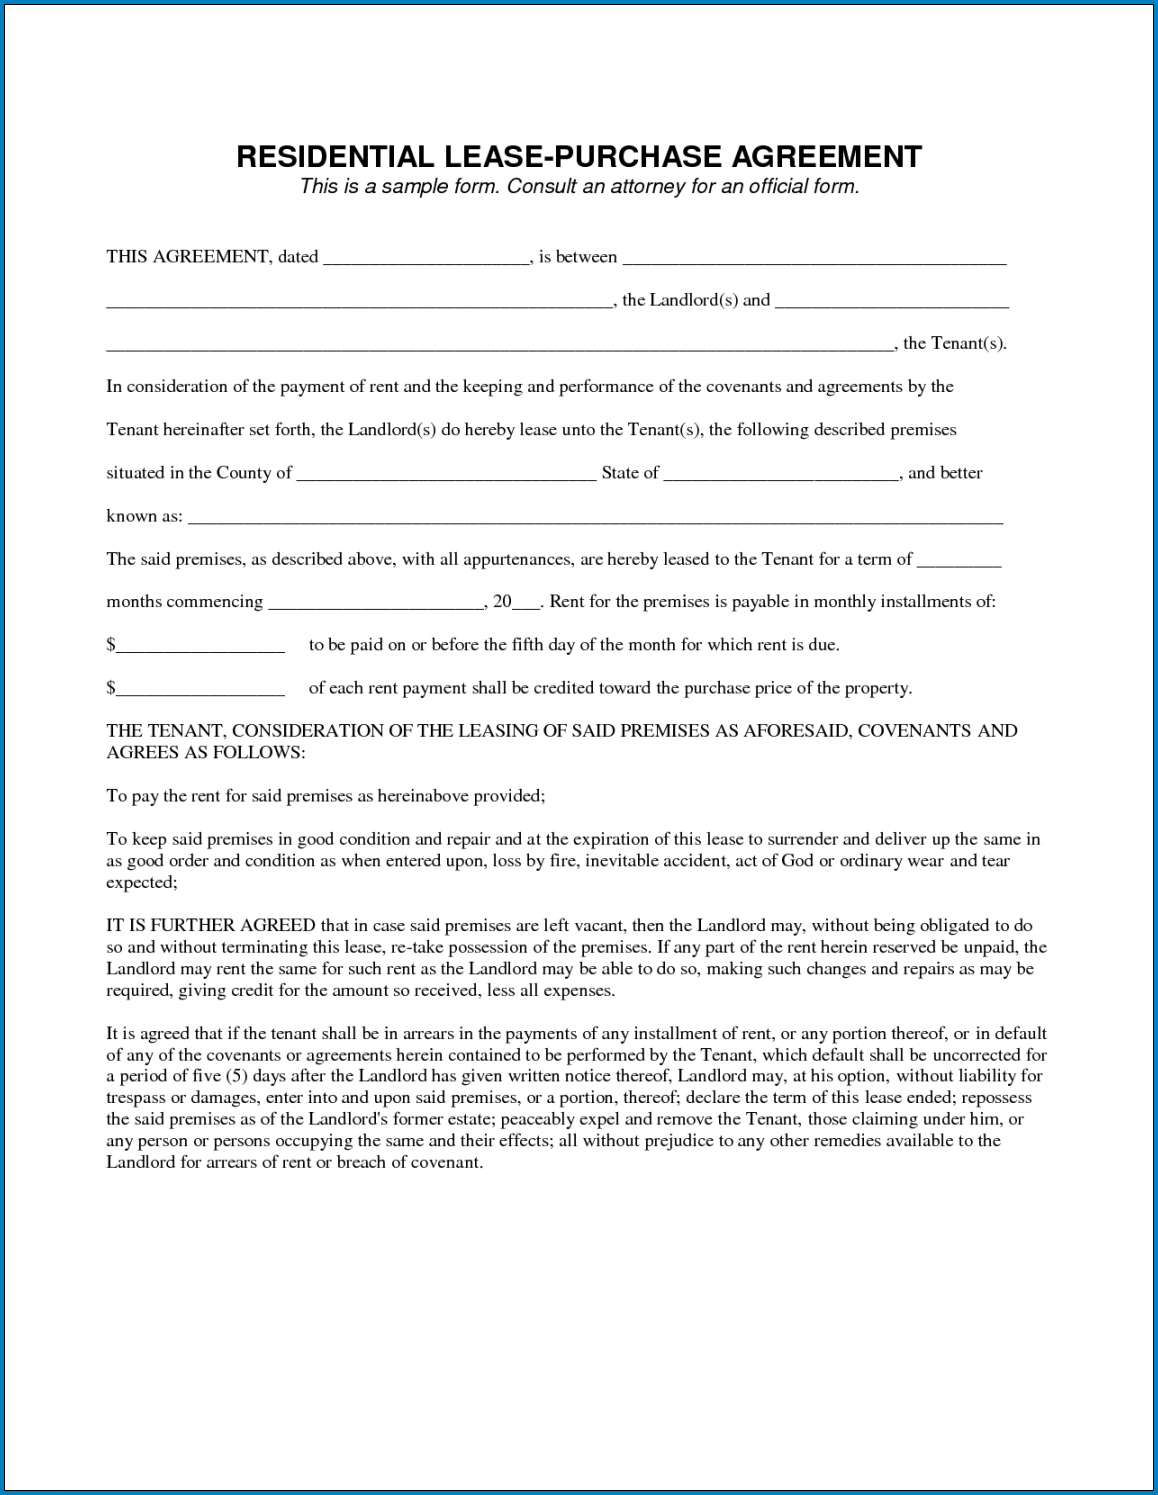 Example of Rent To Own Contract Forms For Houses